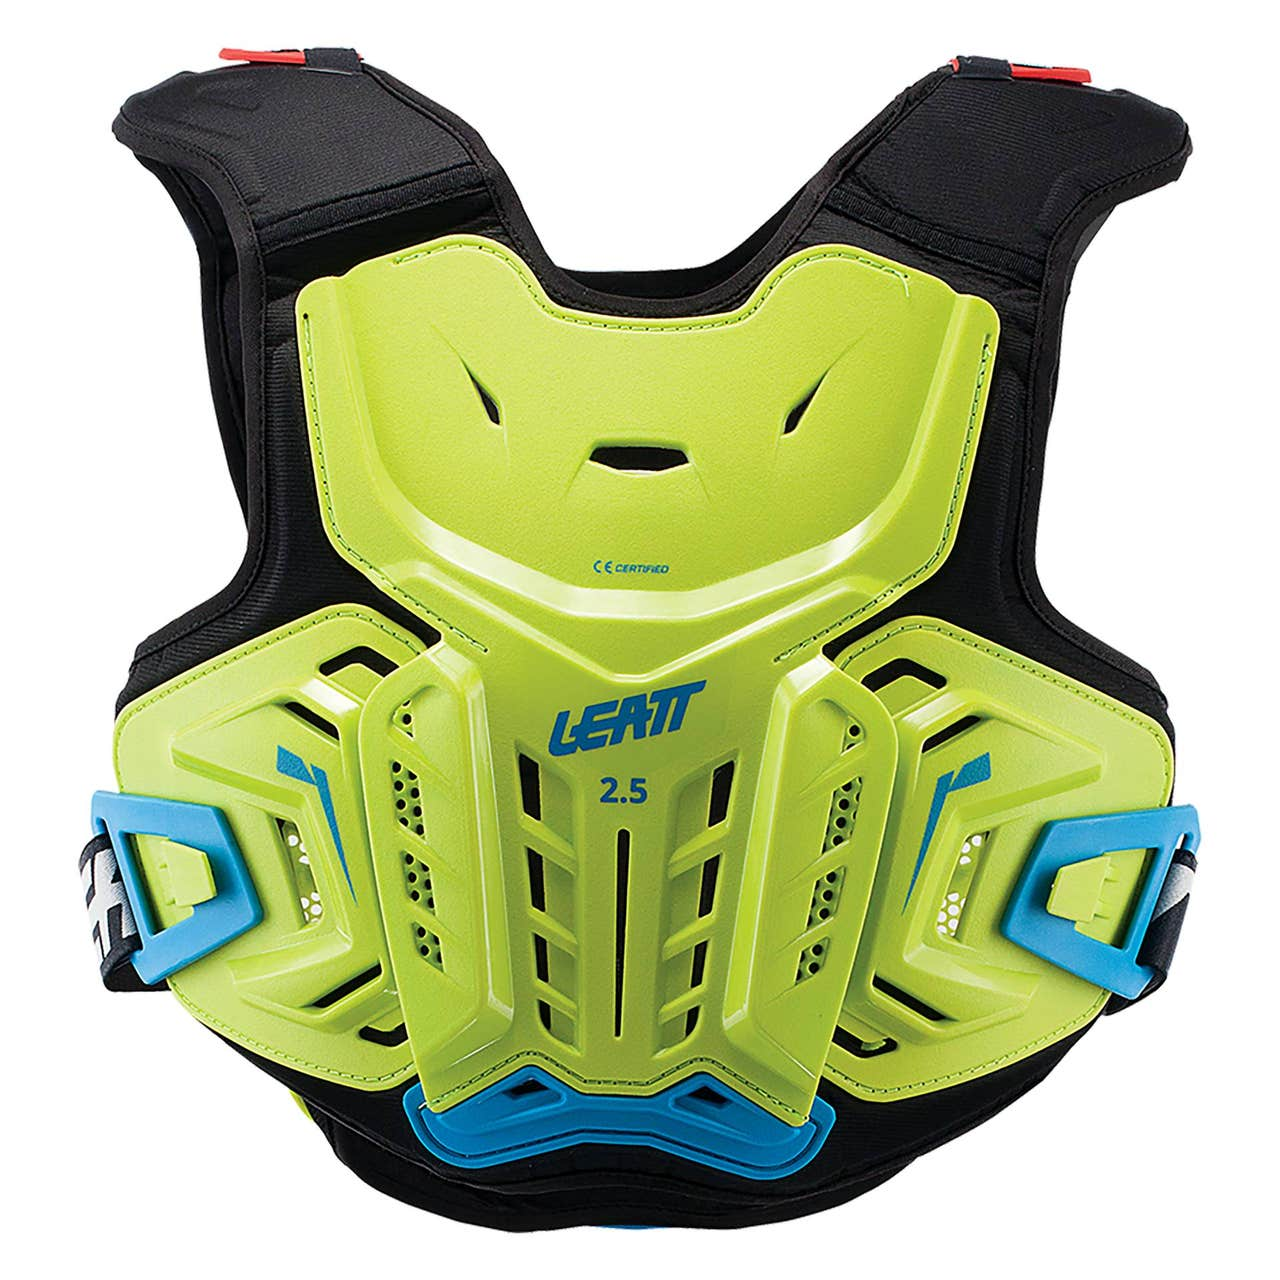 Chest Protector 2.5 Jr